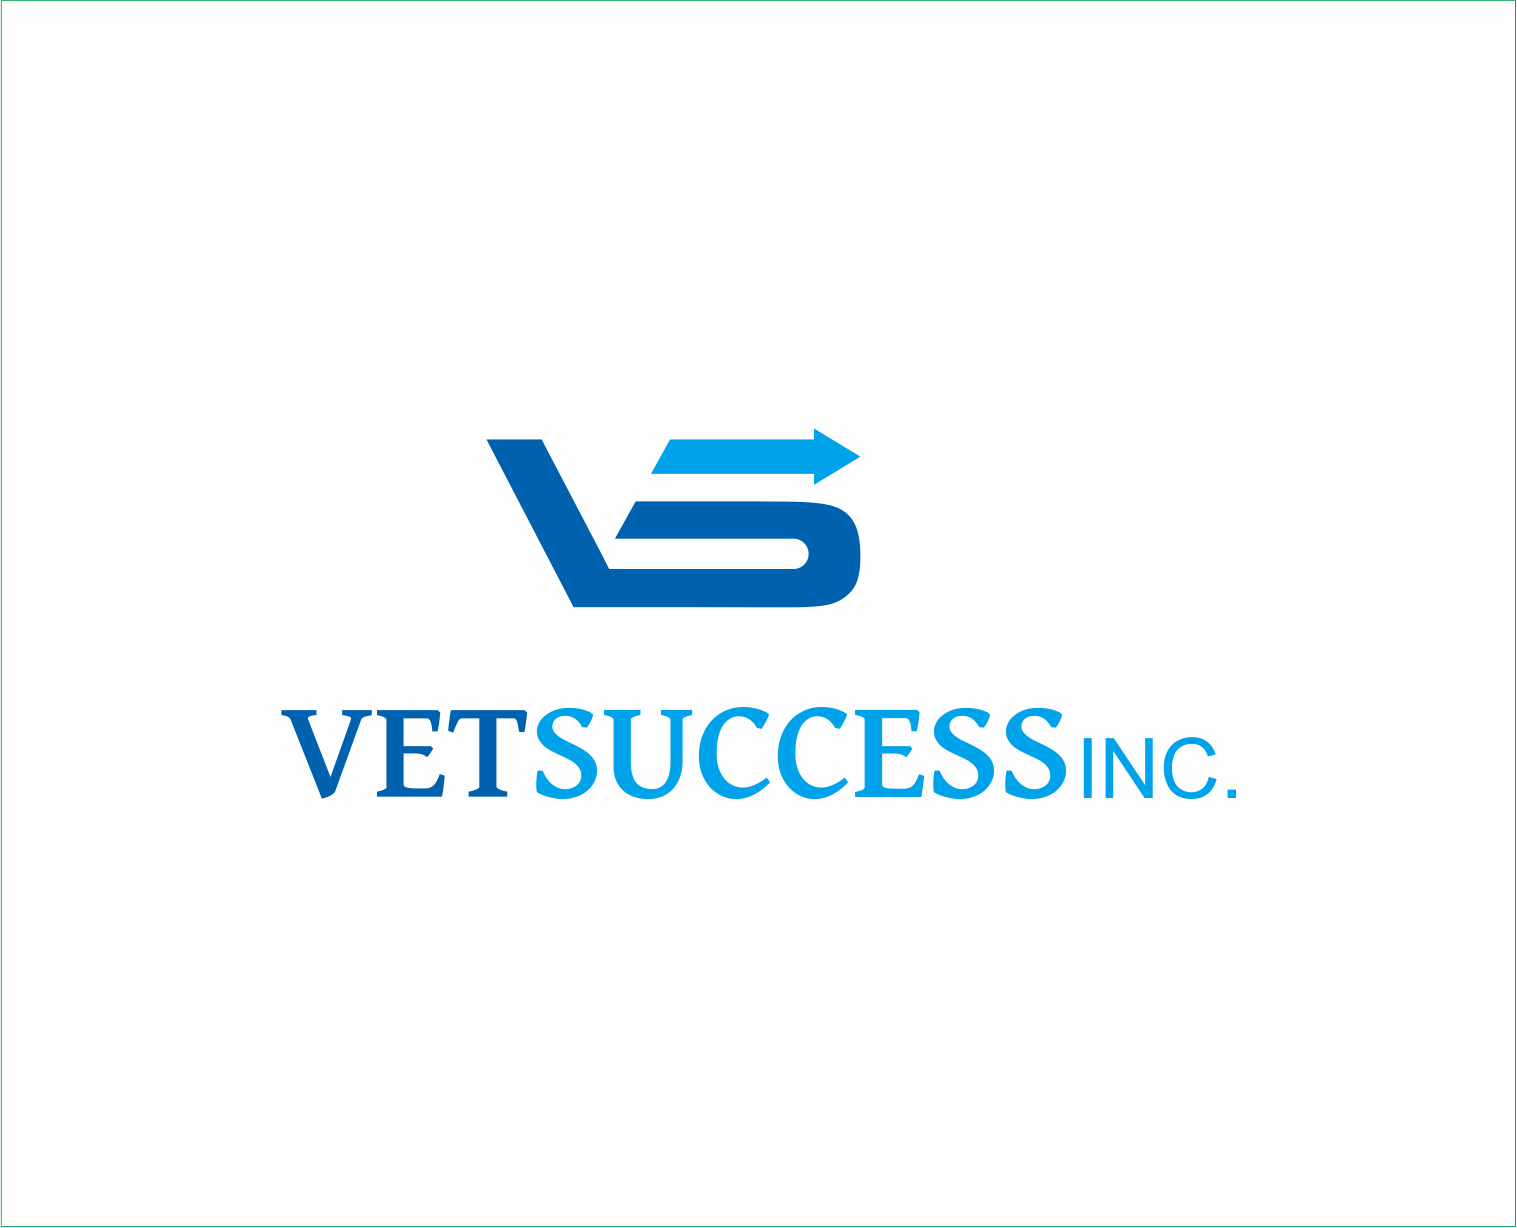 Logo Design by Armada Jamaluddin - Entry No. 158 in the Logo Design Contest Imaginative Logo Design for Vet Success Inc..